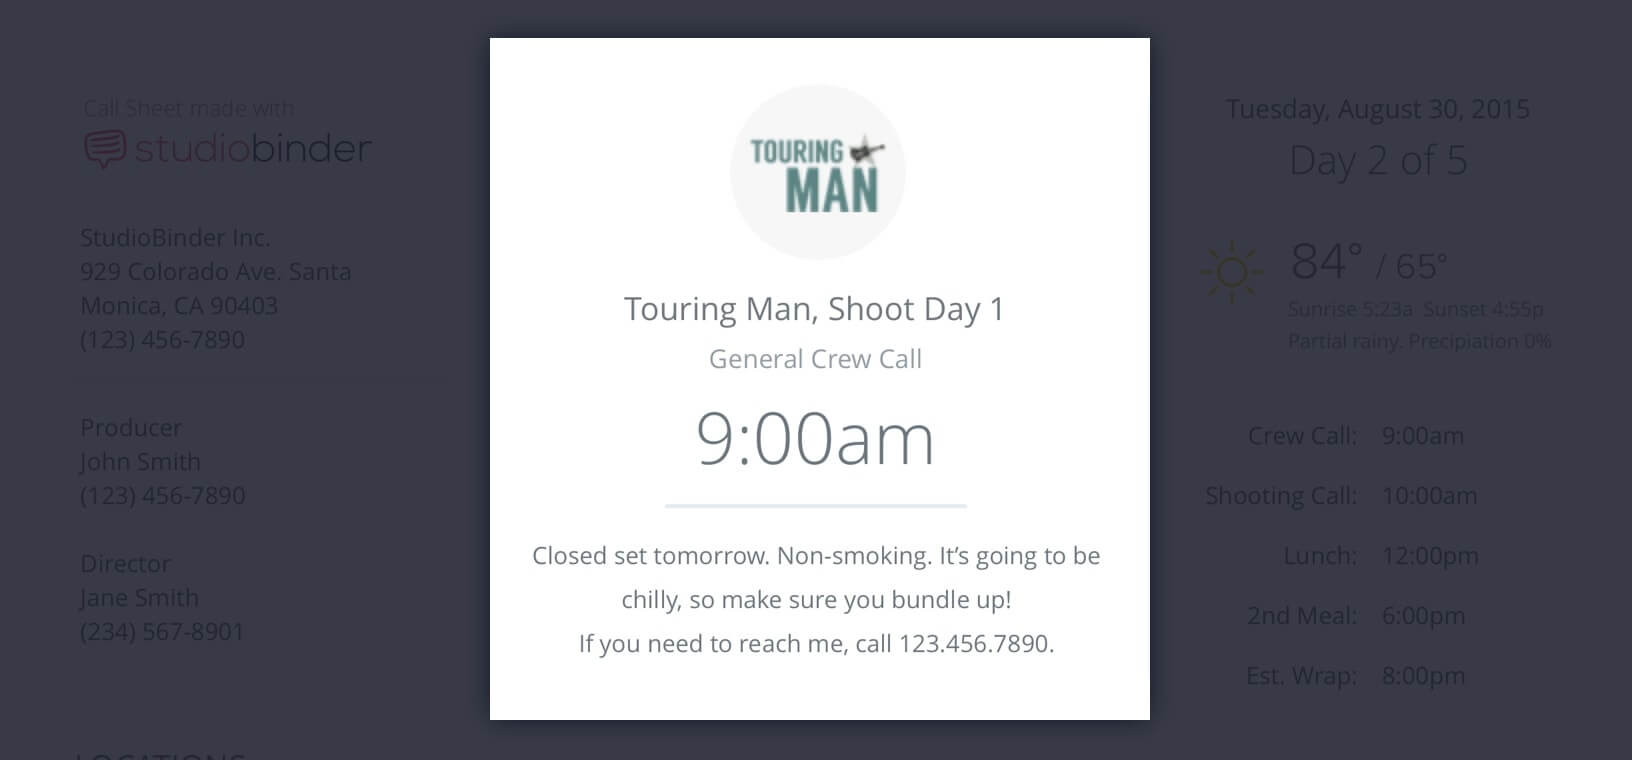 Callsheet Template Anatomy - Project Title and General Crew Call Time - StudioBinder